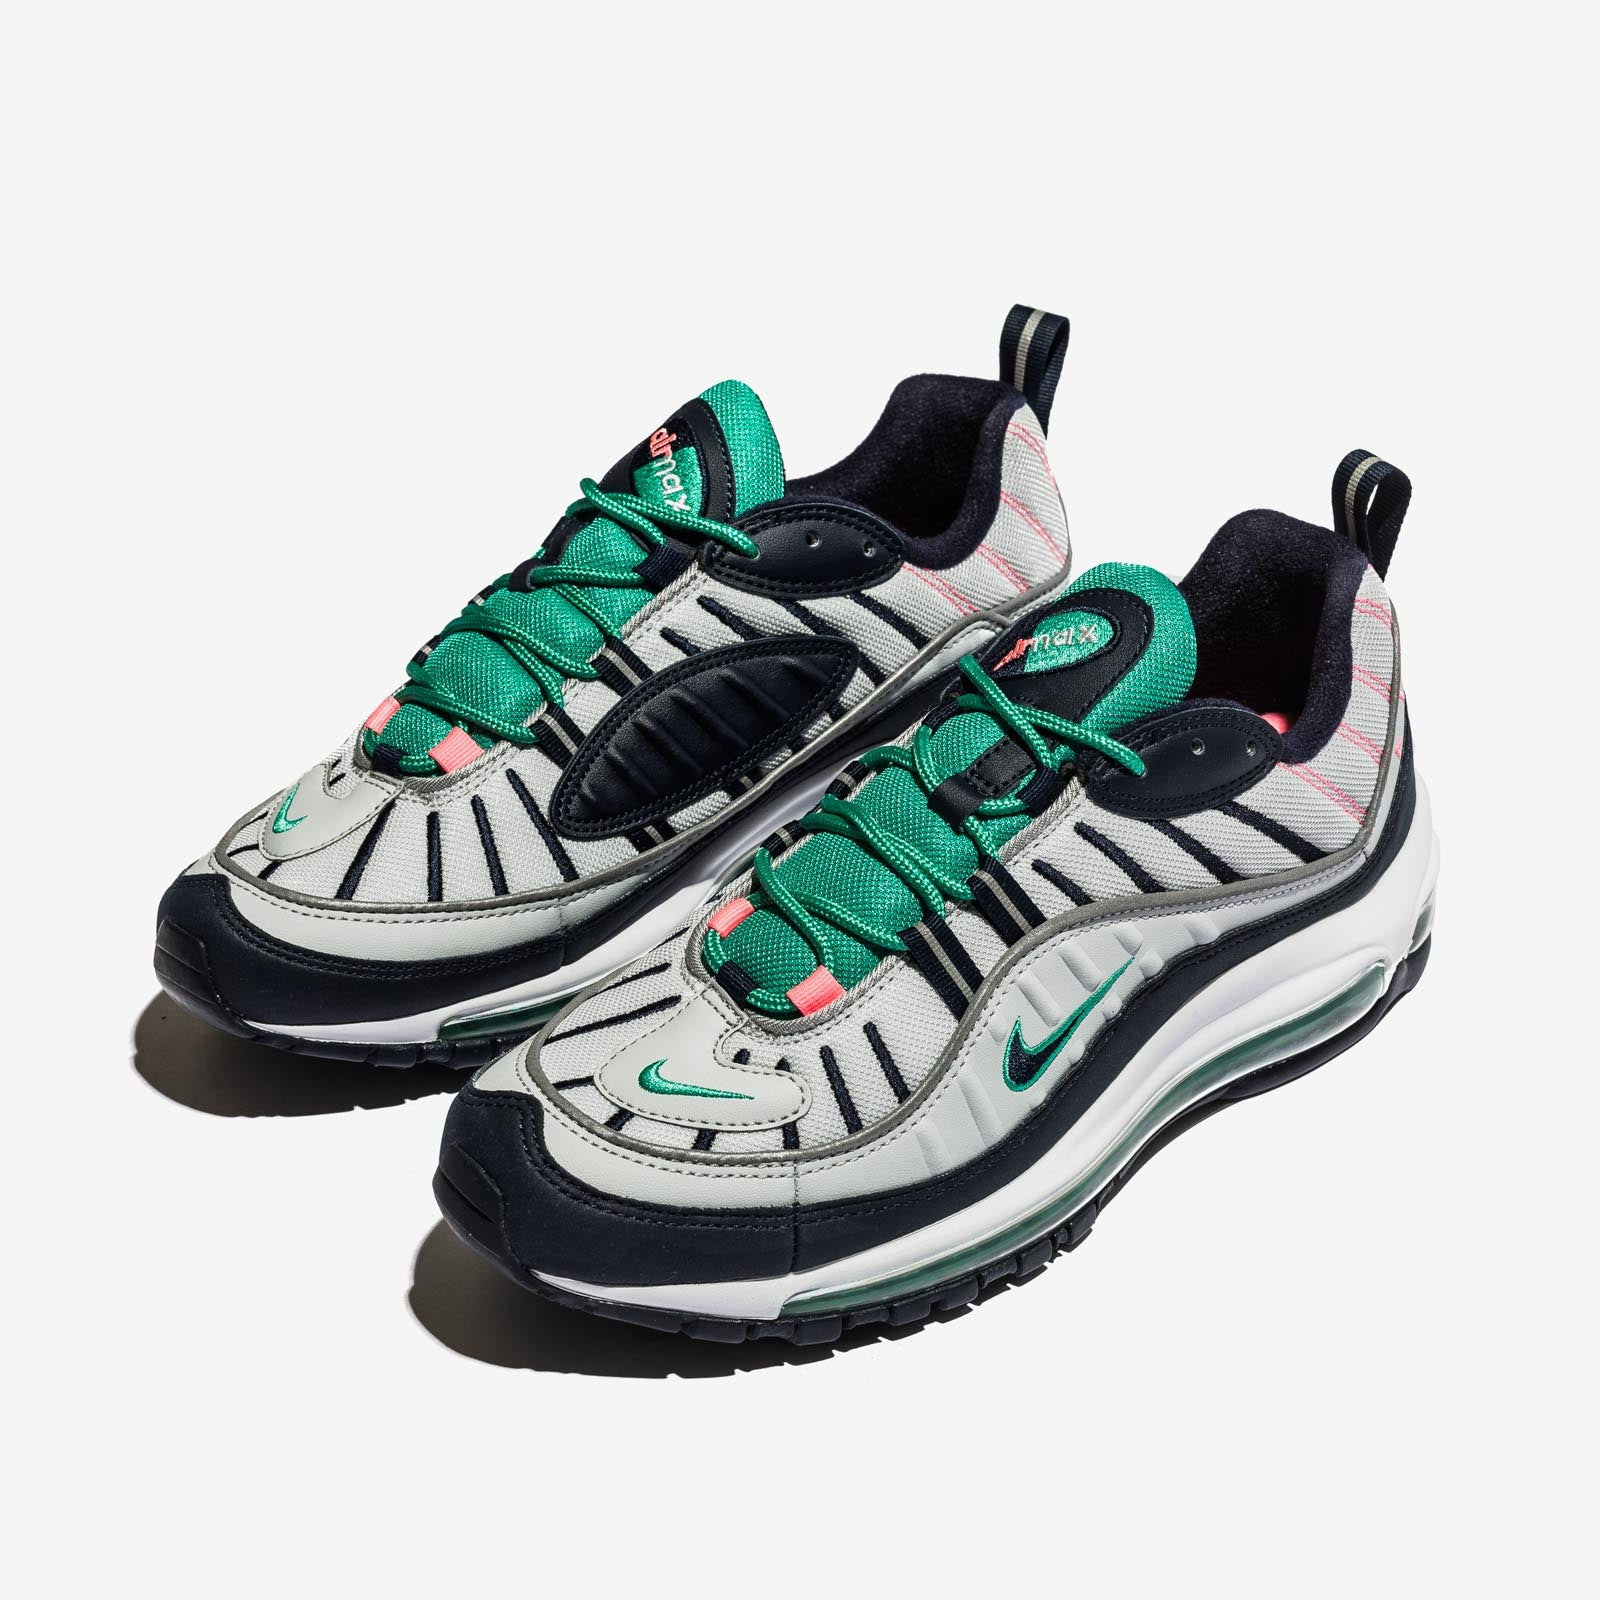 a91e2ebd4593 Nike Air Max 98  South Beach